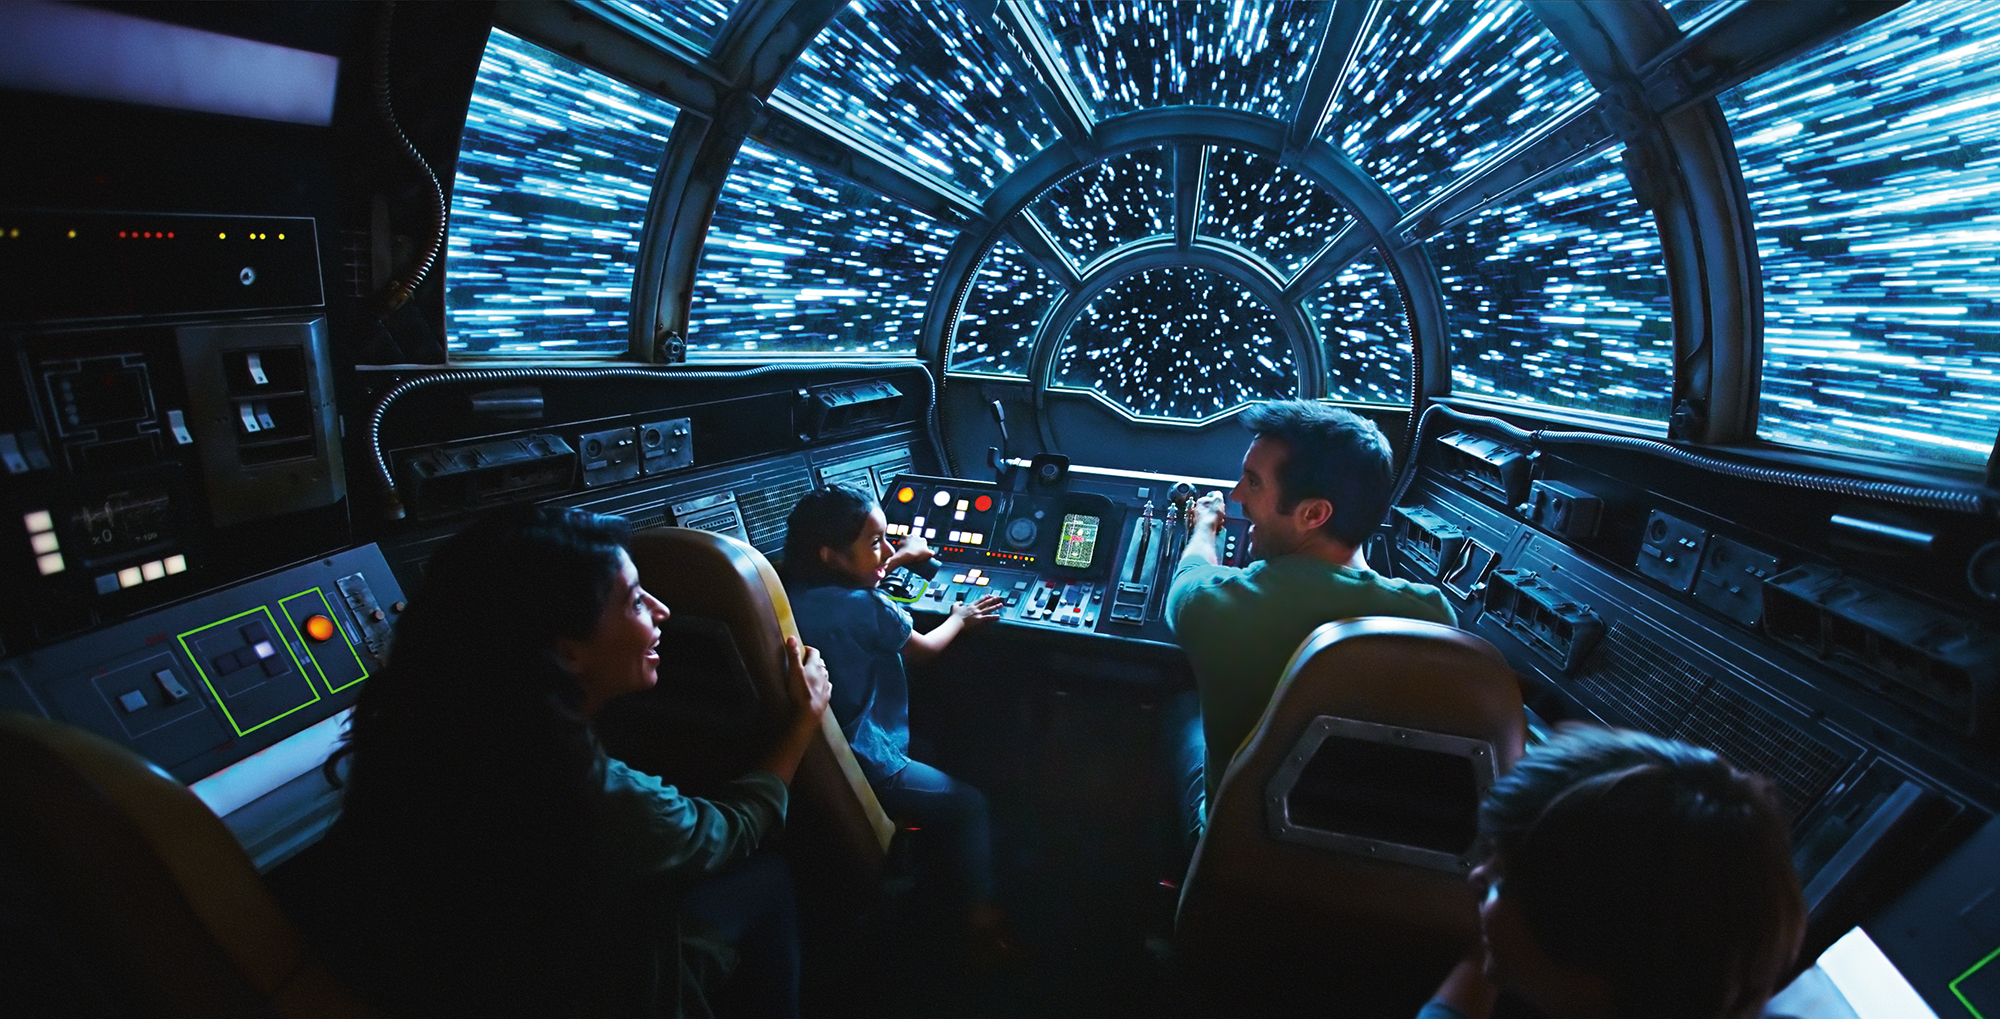 Wonderings: have you felt a disturbance in the Force?